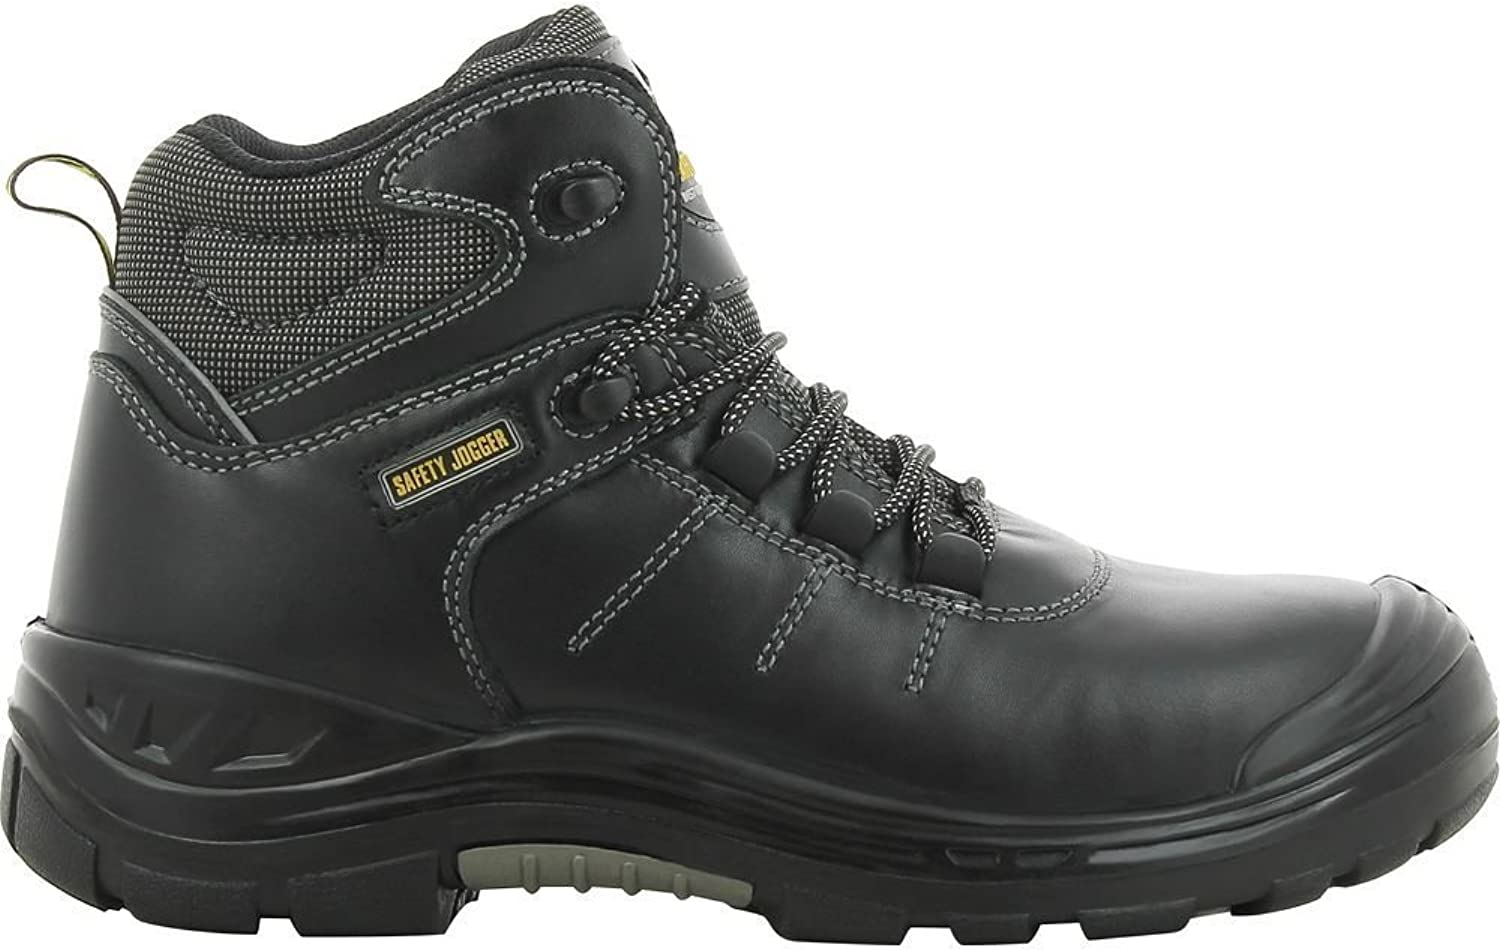 Safety Joggers 'Pulse' S3 SRC CI HRO Metal Free Black Leather Safety Boot